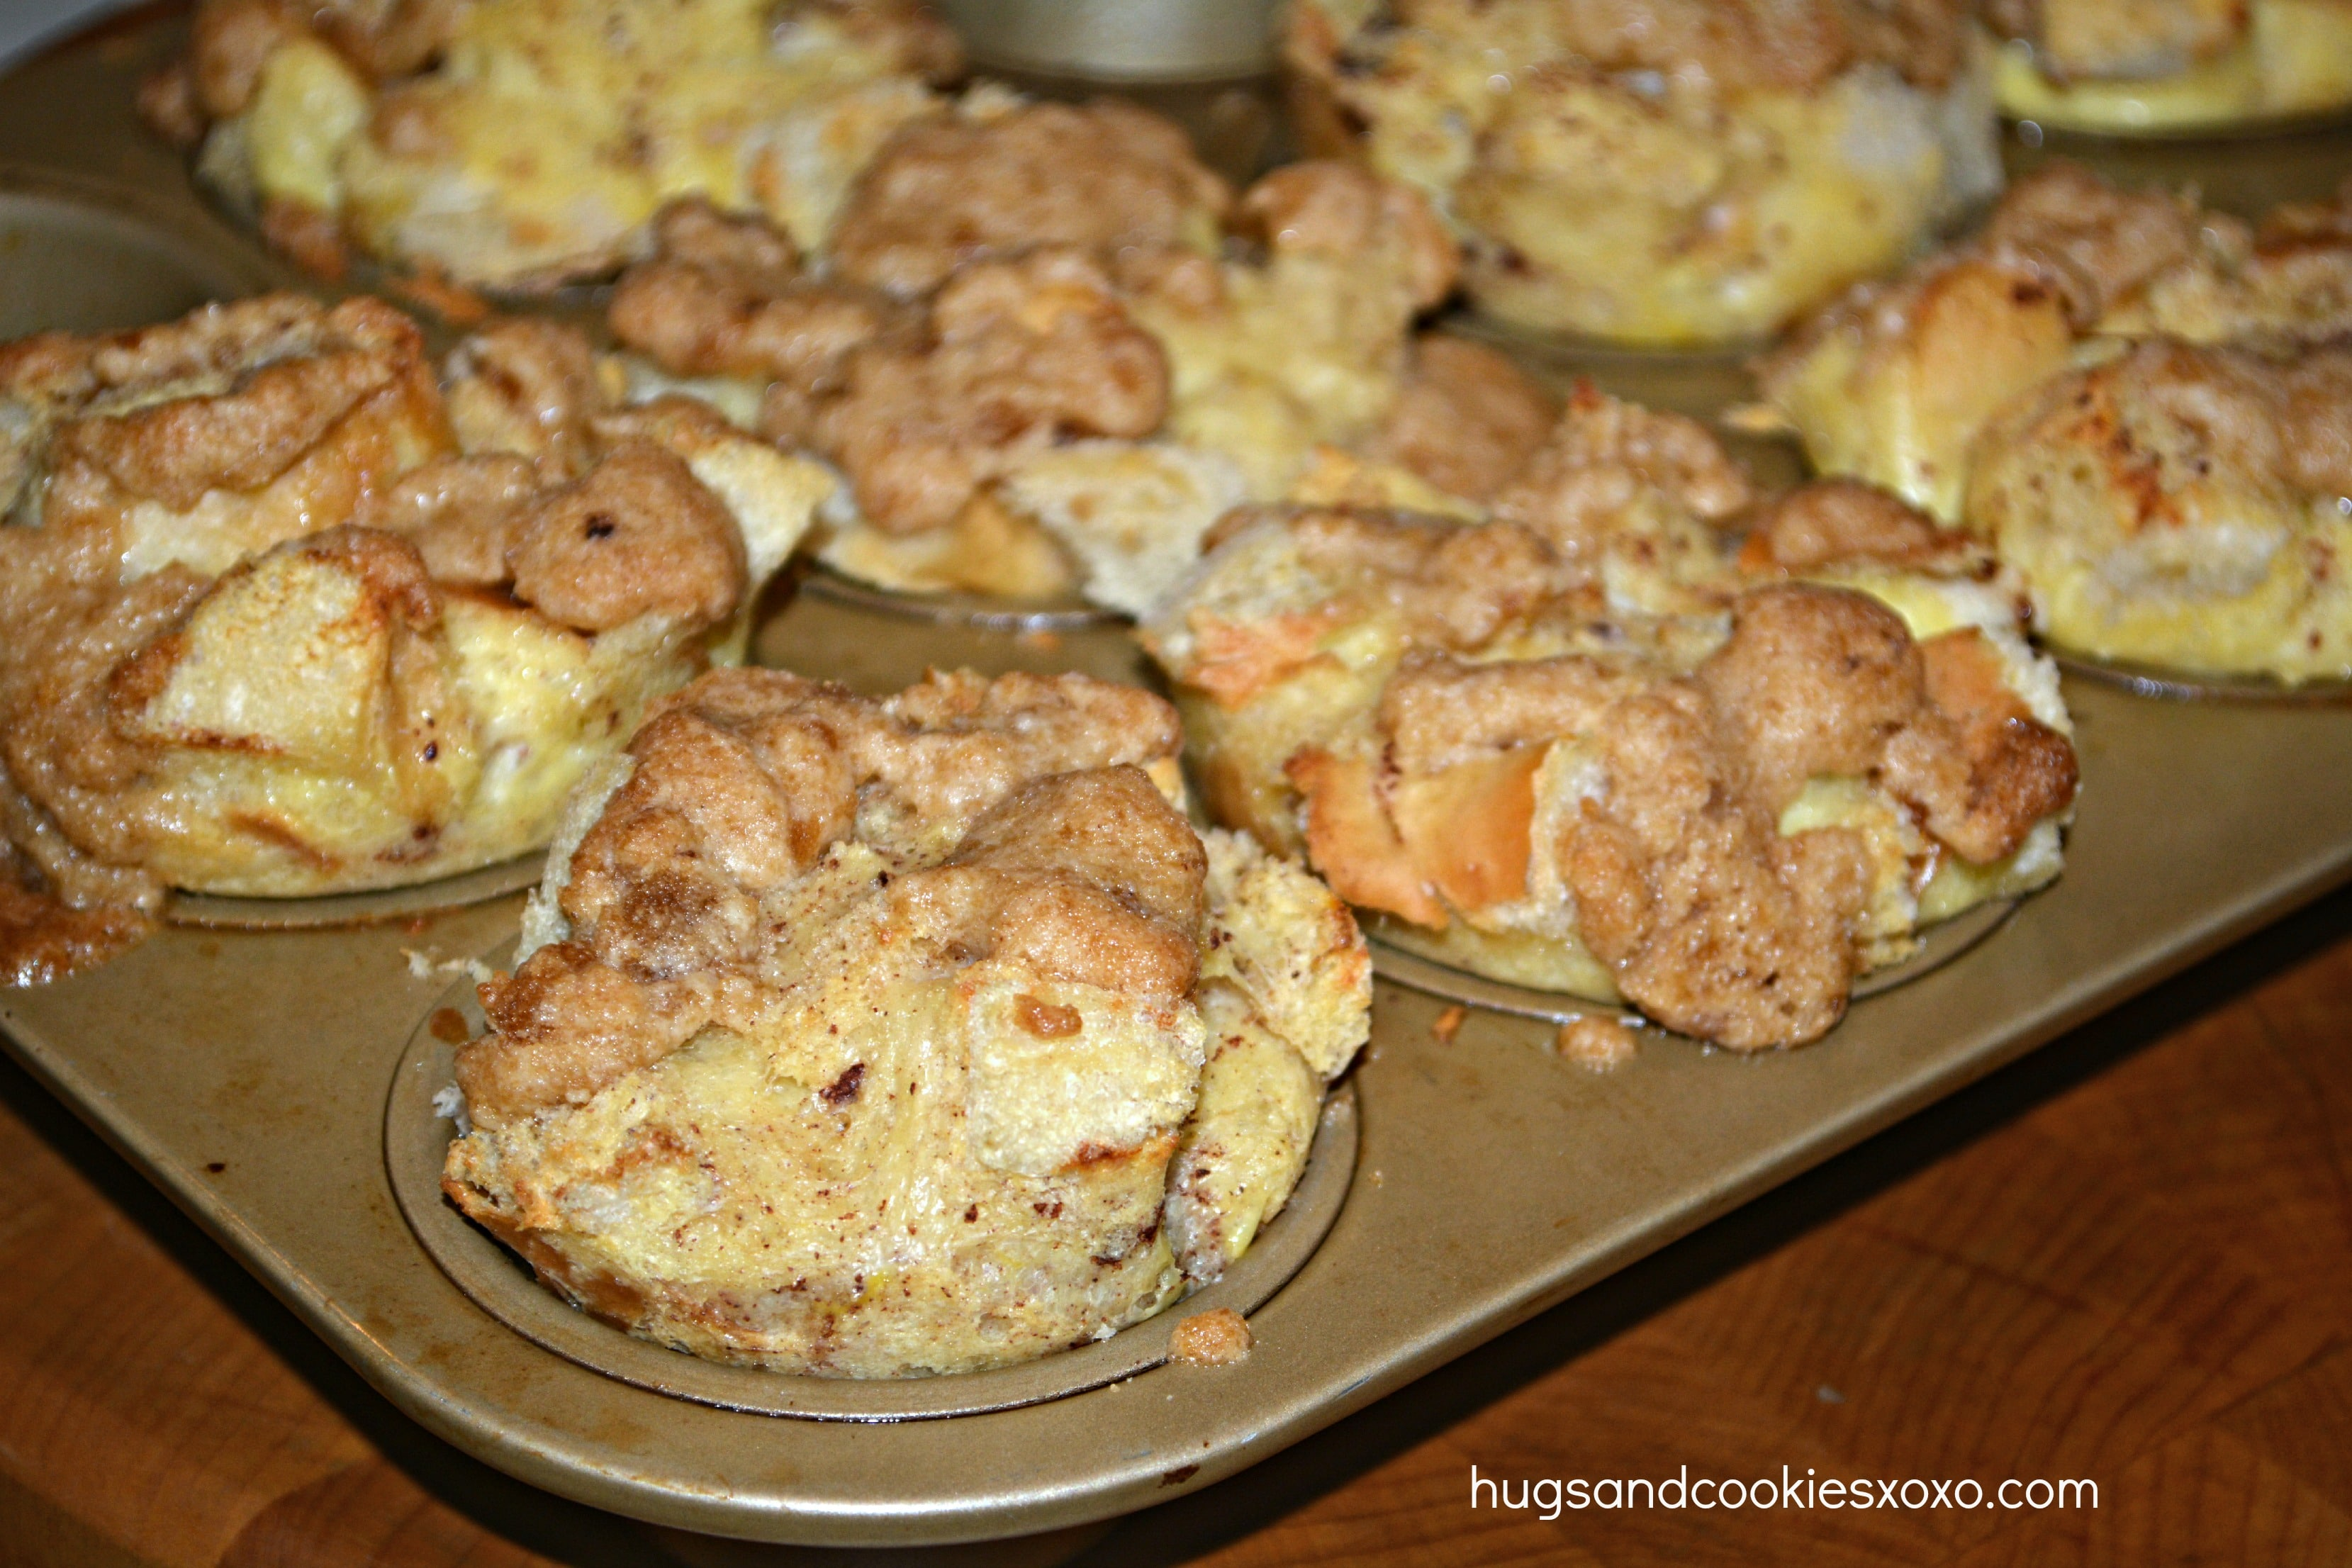 French Toast Muffins With Sugar & Maple Syrup - Hugs and Cookies XOXO